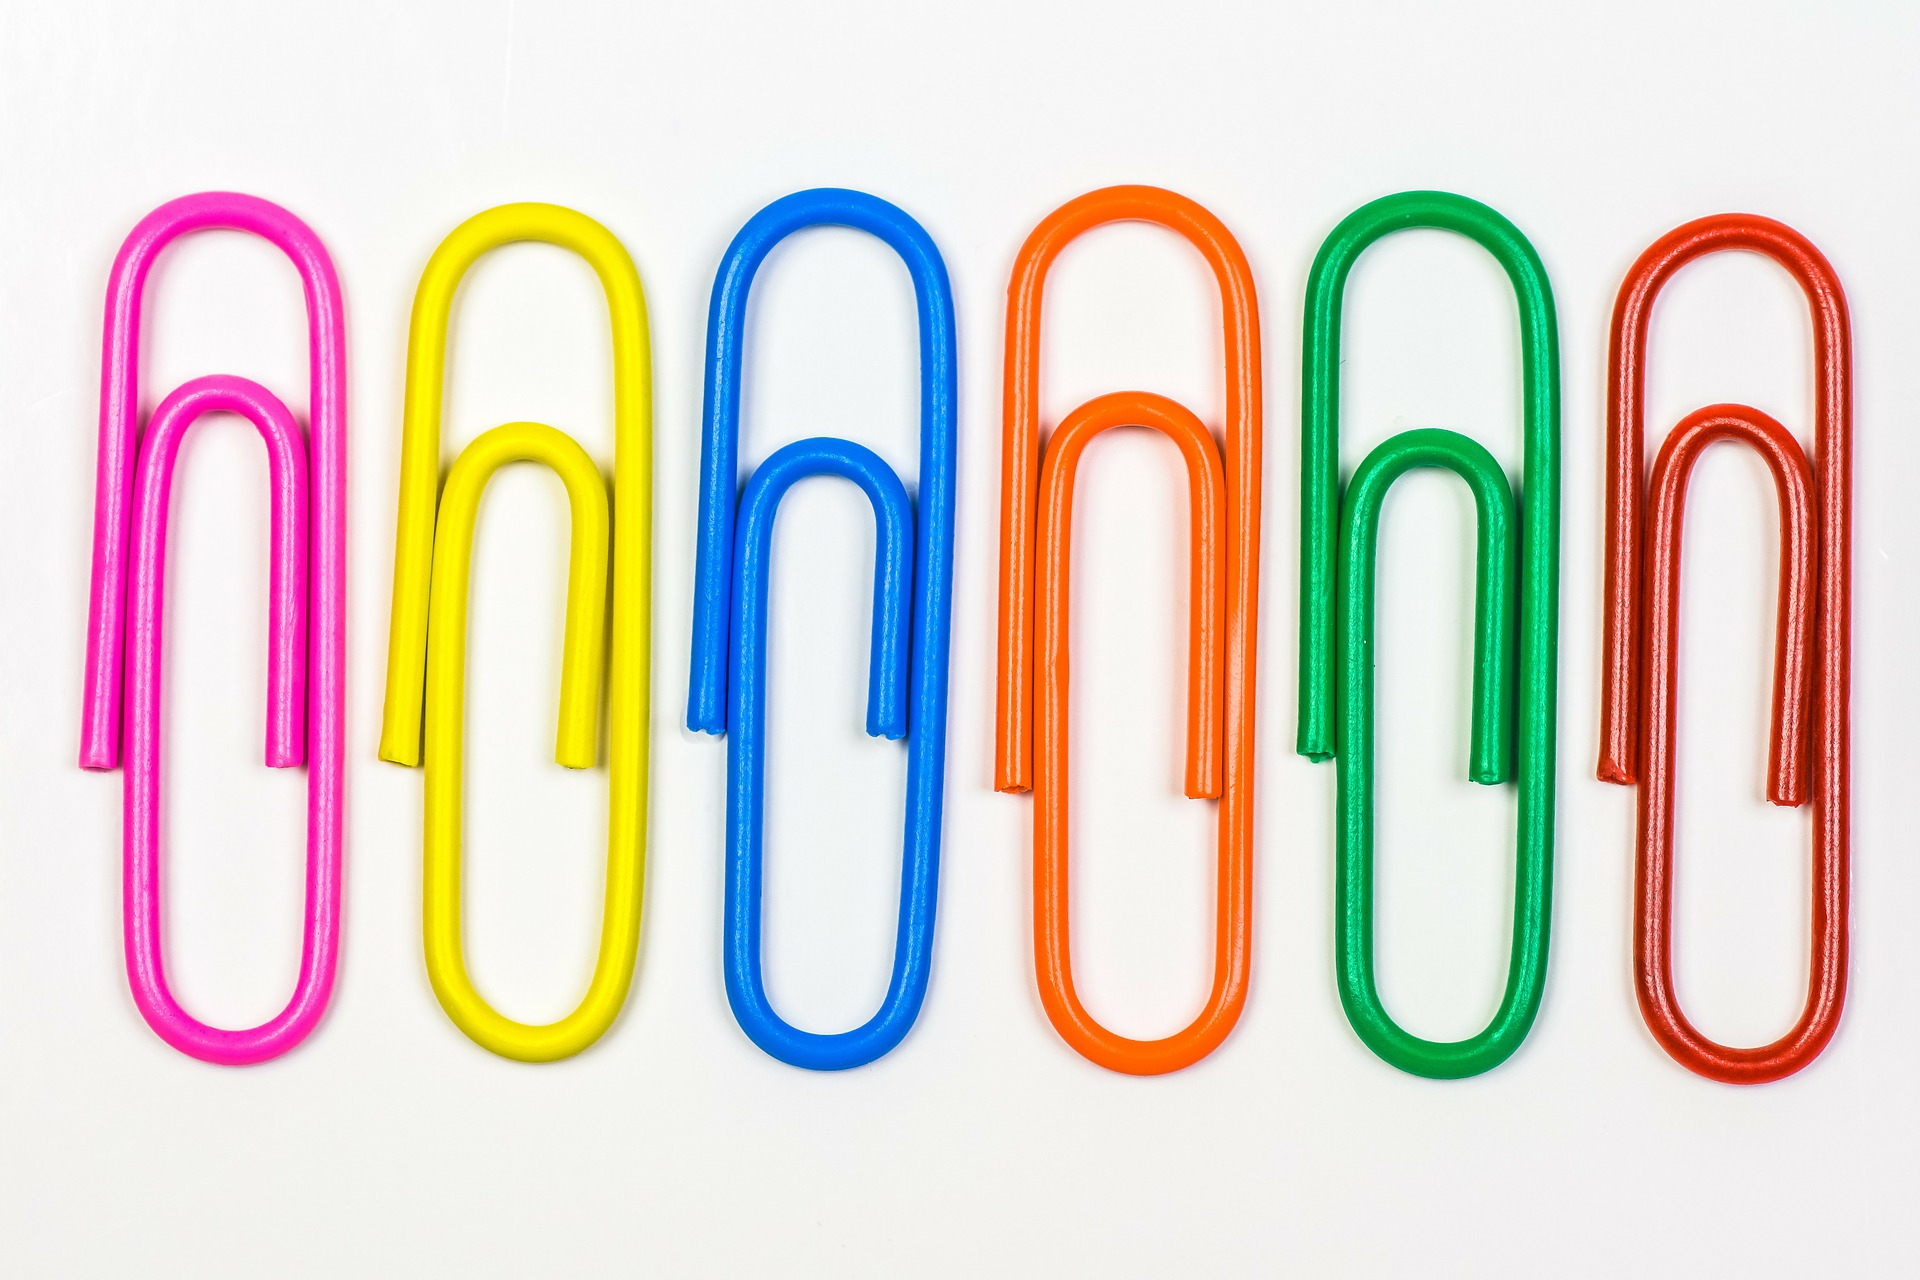 paperclip-178126_1920